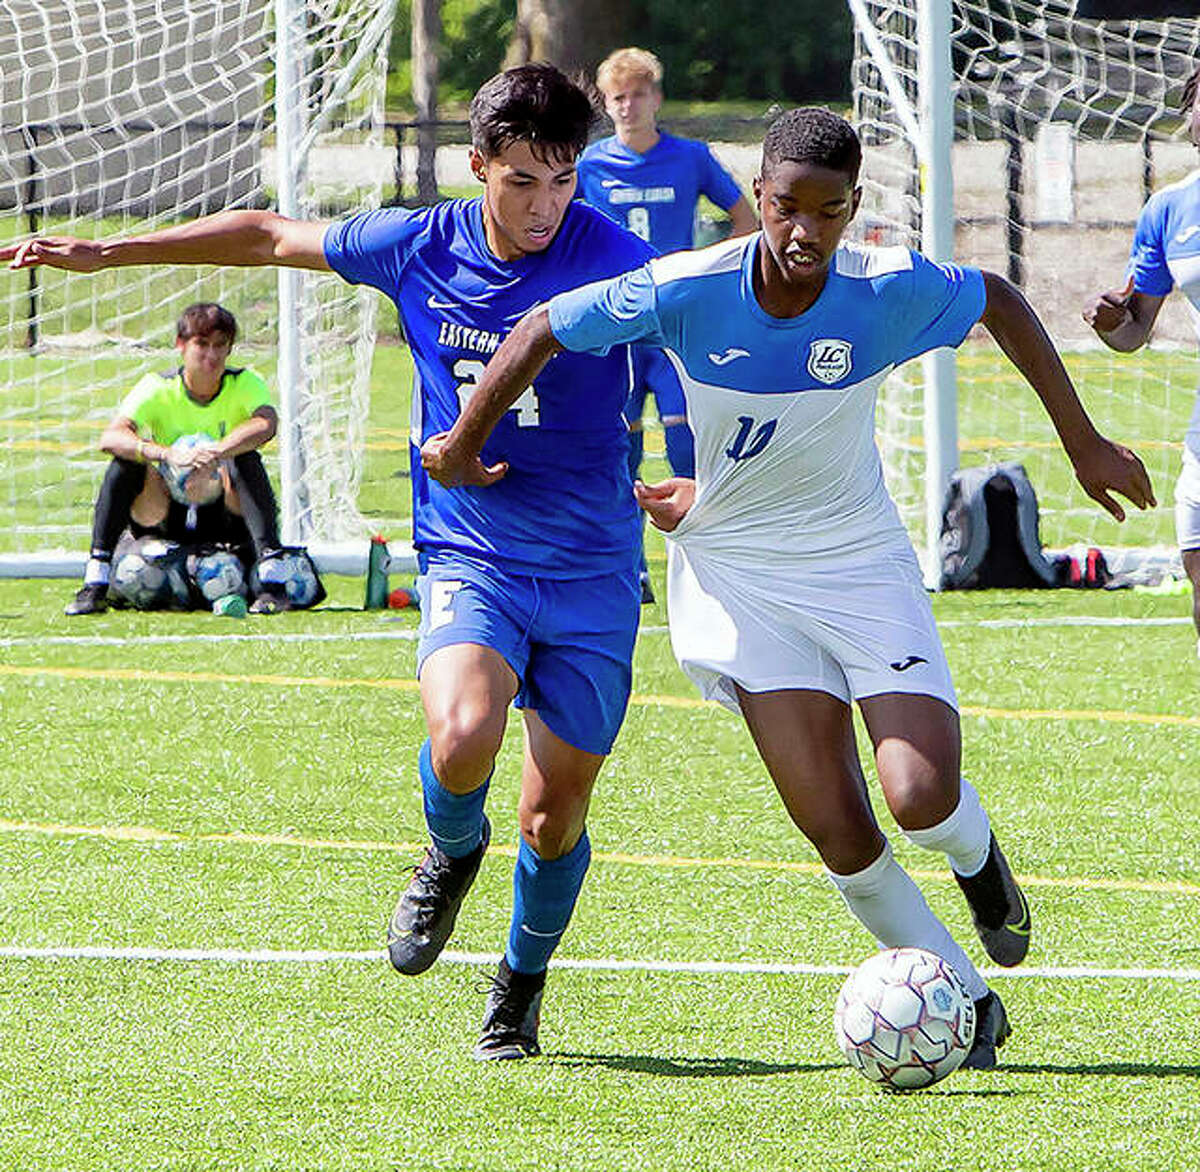 Tyriq Gordon of Lewis and Clark (11) scored a goal in Wednesday's 5-1 victory over Lincoln Trail College in Robinson. He is shown in action Sept. 5 against Southwestern Florida State College.